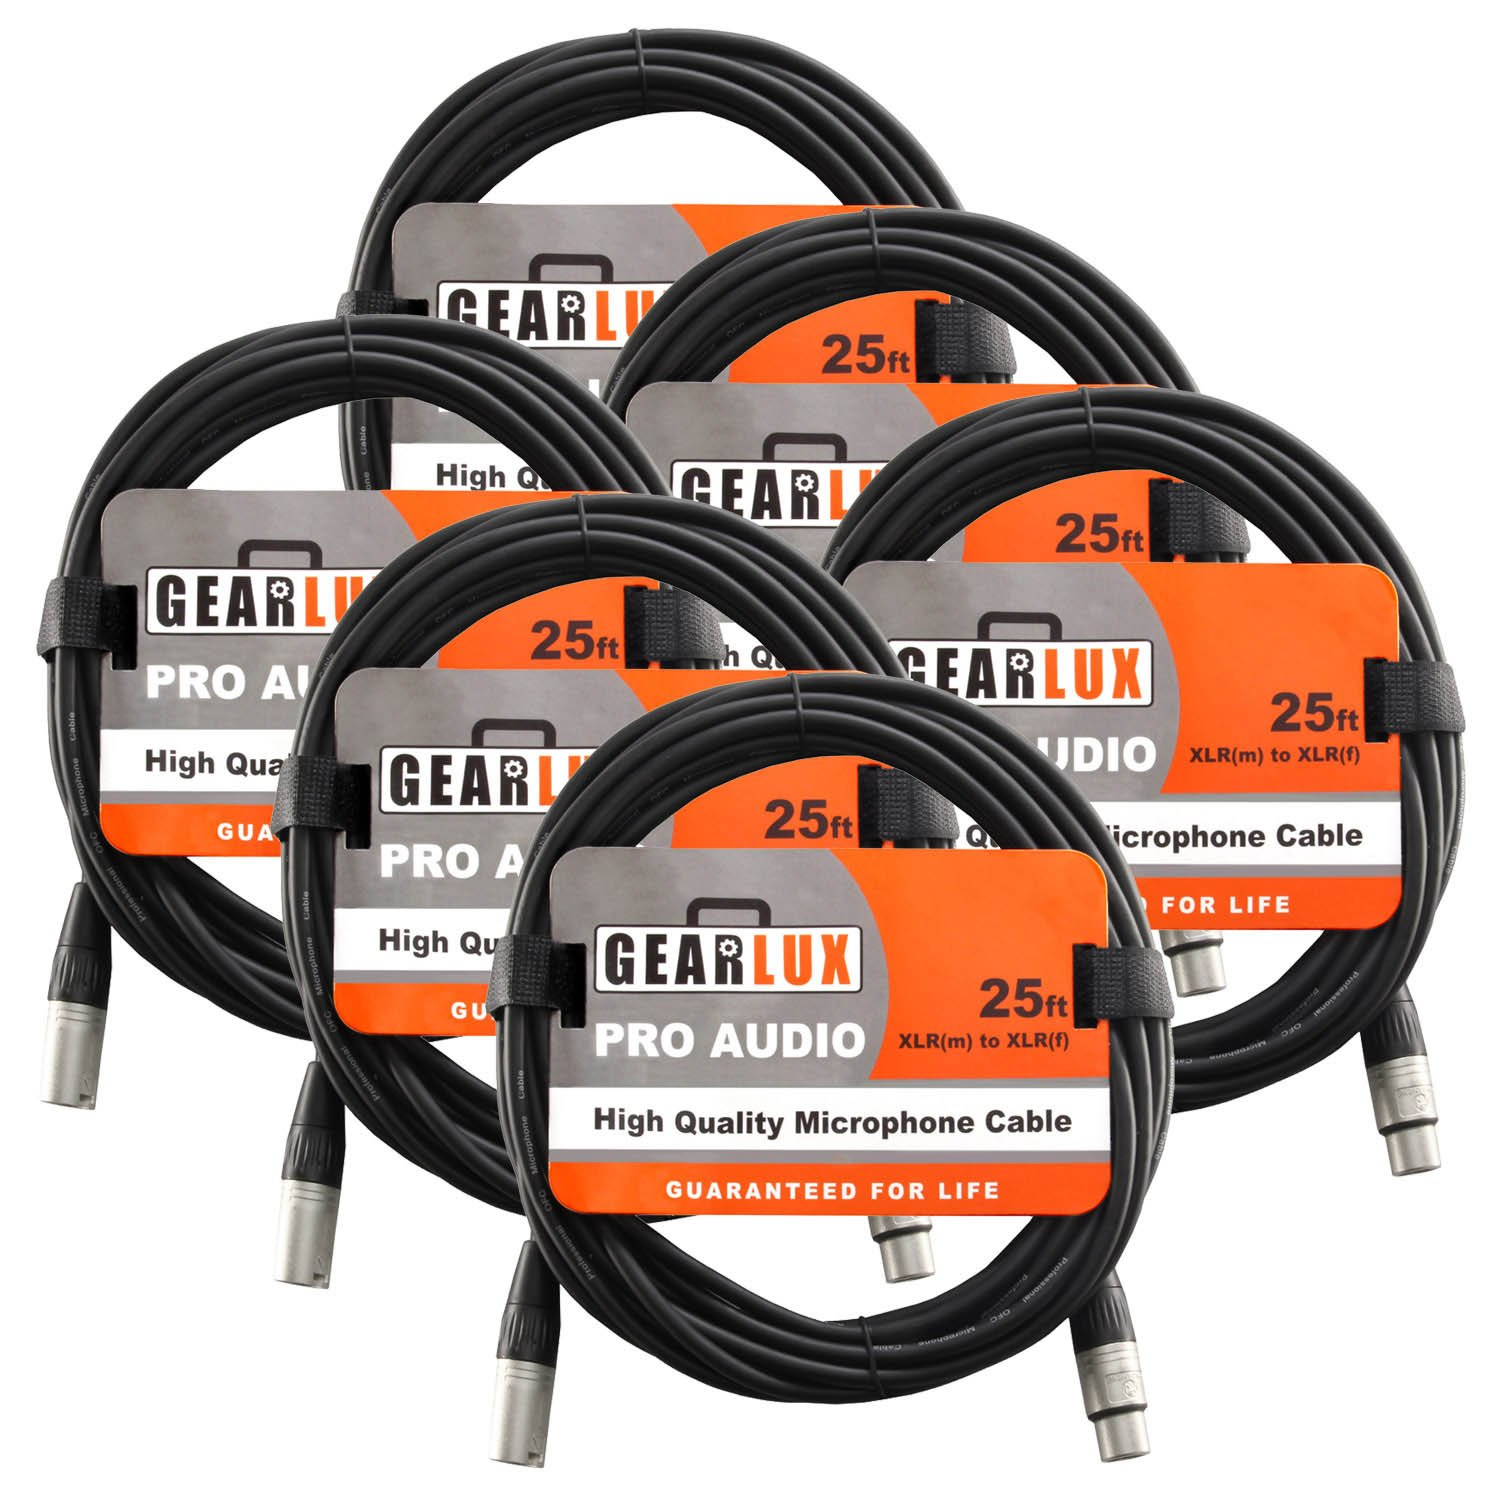 Gearlux XLR Microphone Cable, 25 Foot - 6 Pack